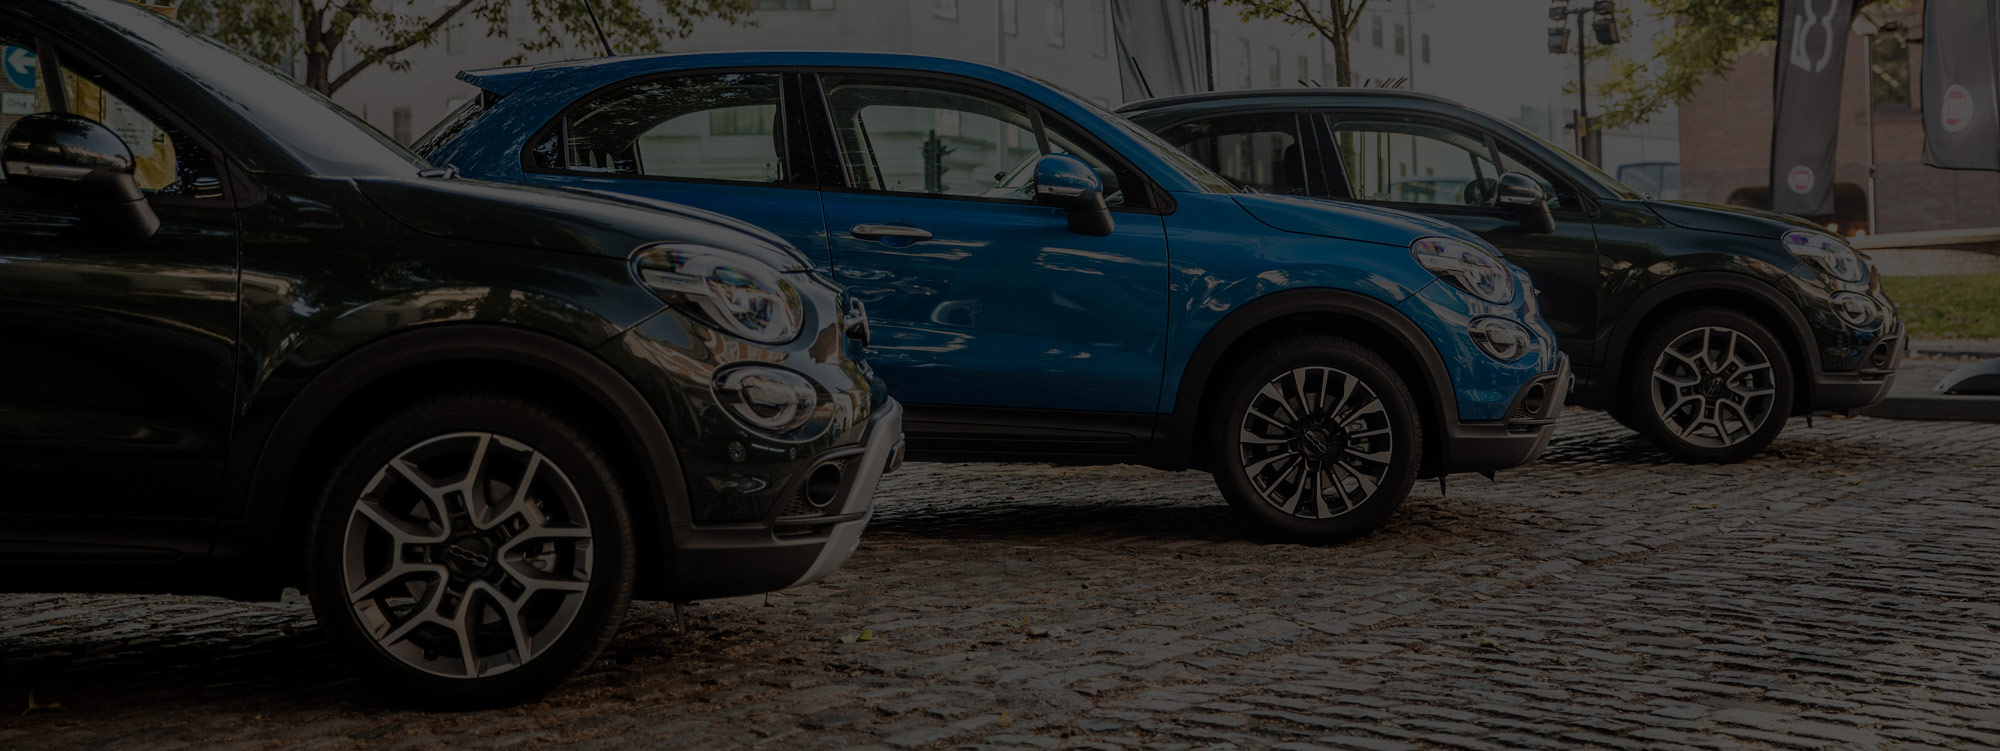 fiat 500x uk launch on cue communications. Black Bedroom Furniture Sets. Home Design Ideas